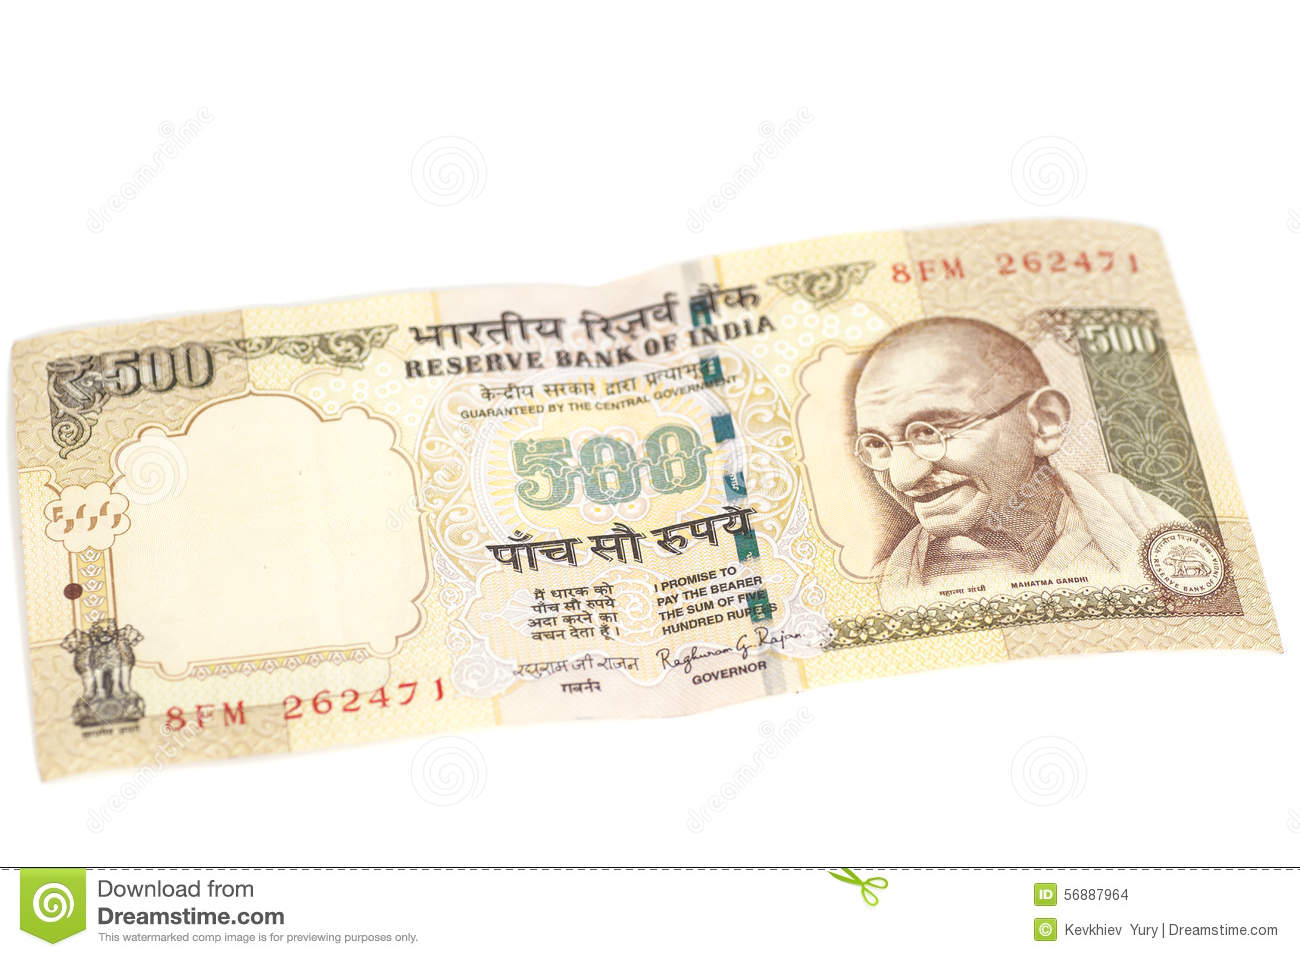 Five hundred rupee note (Indian currency)